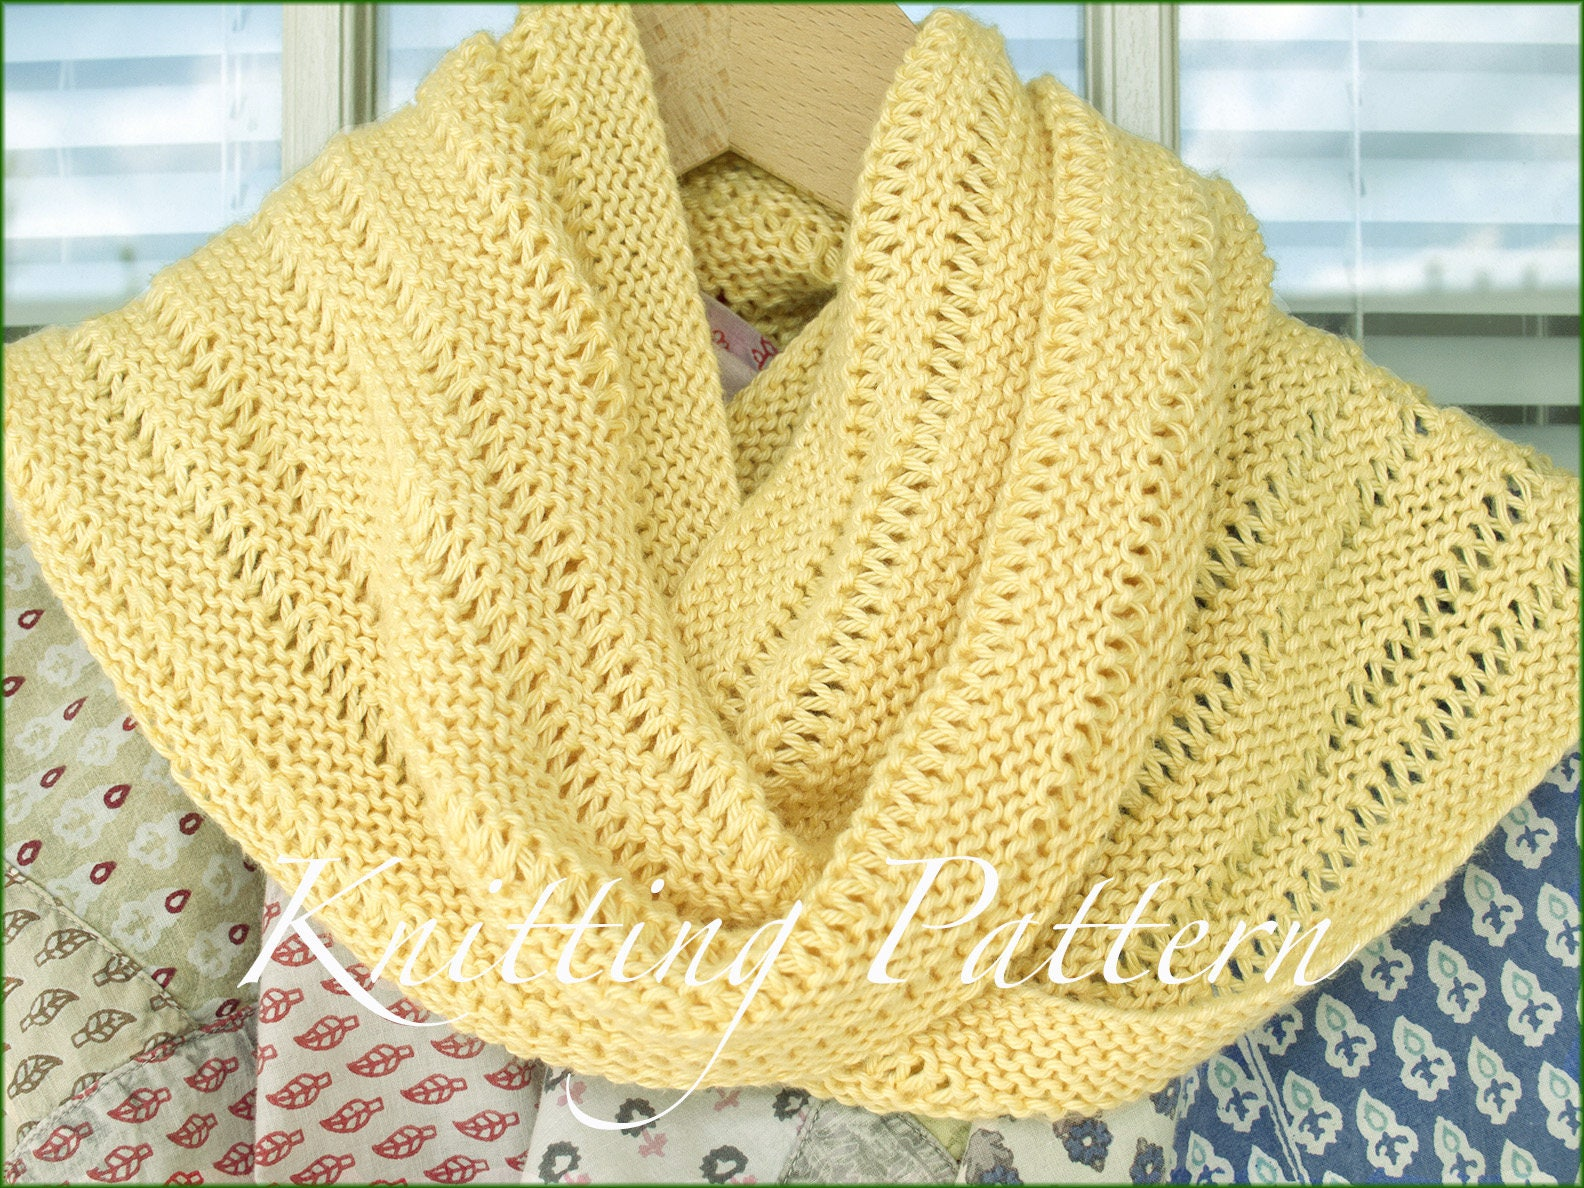 Reversible Knitting Patterns For Scarves Amazing Design Ideas